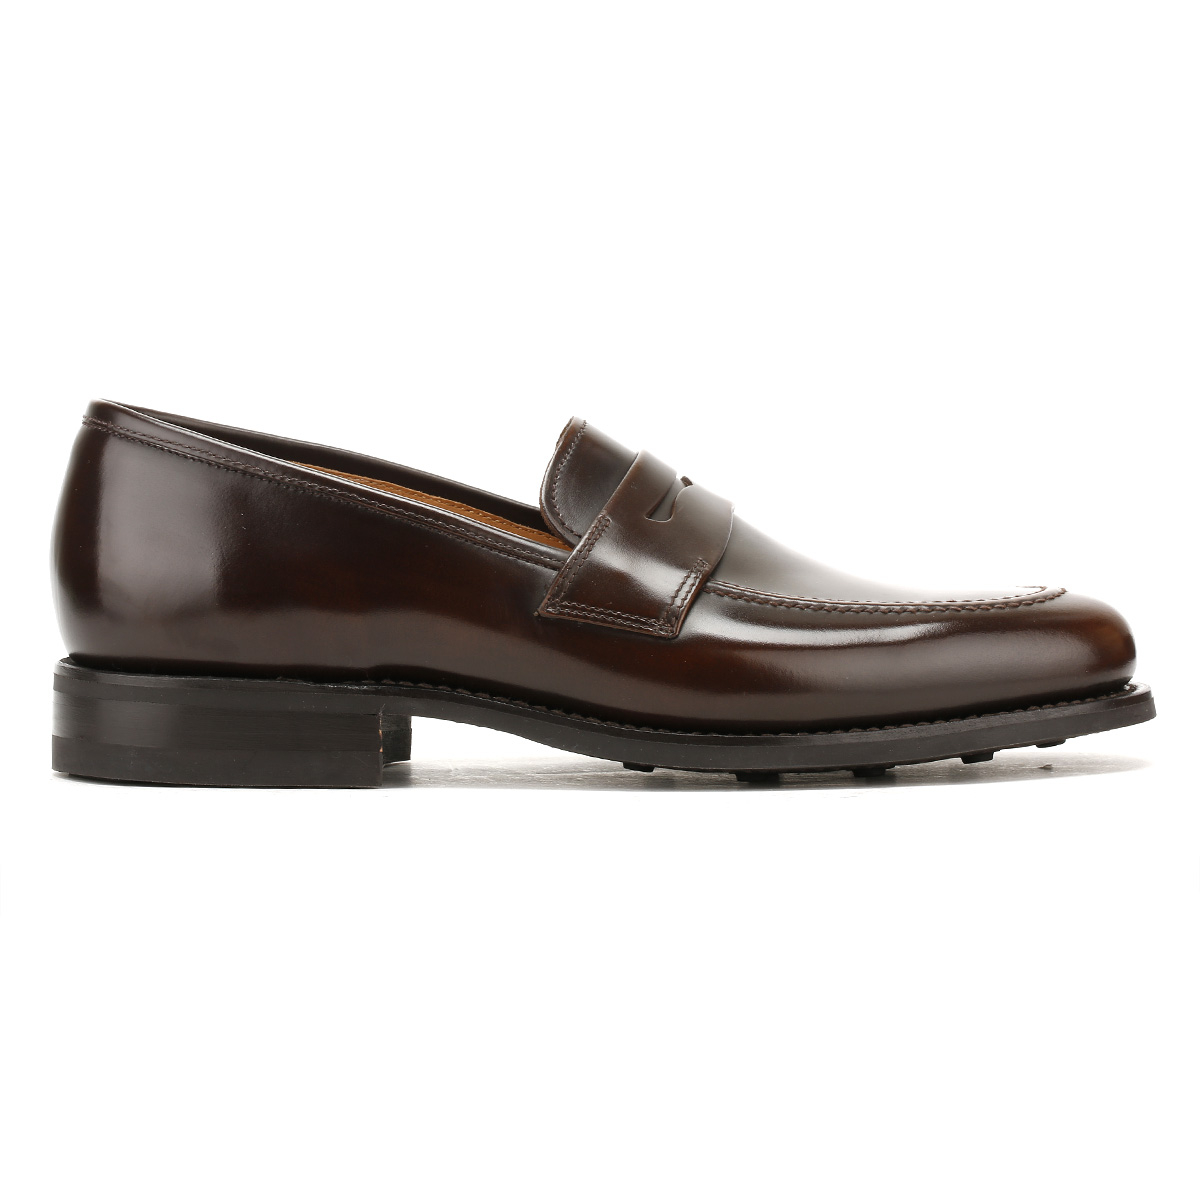 Loake Mens Brown 211 Formal Loafers, Handcrafted Leather